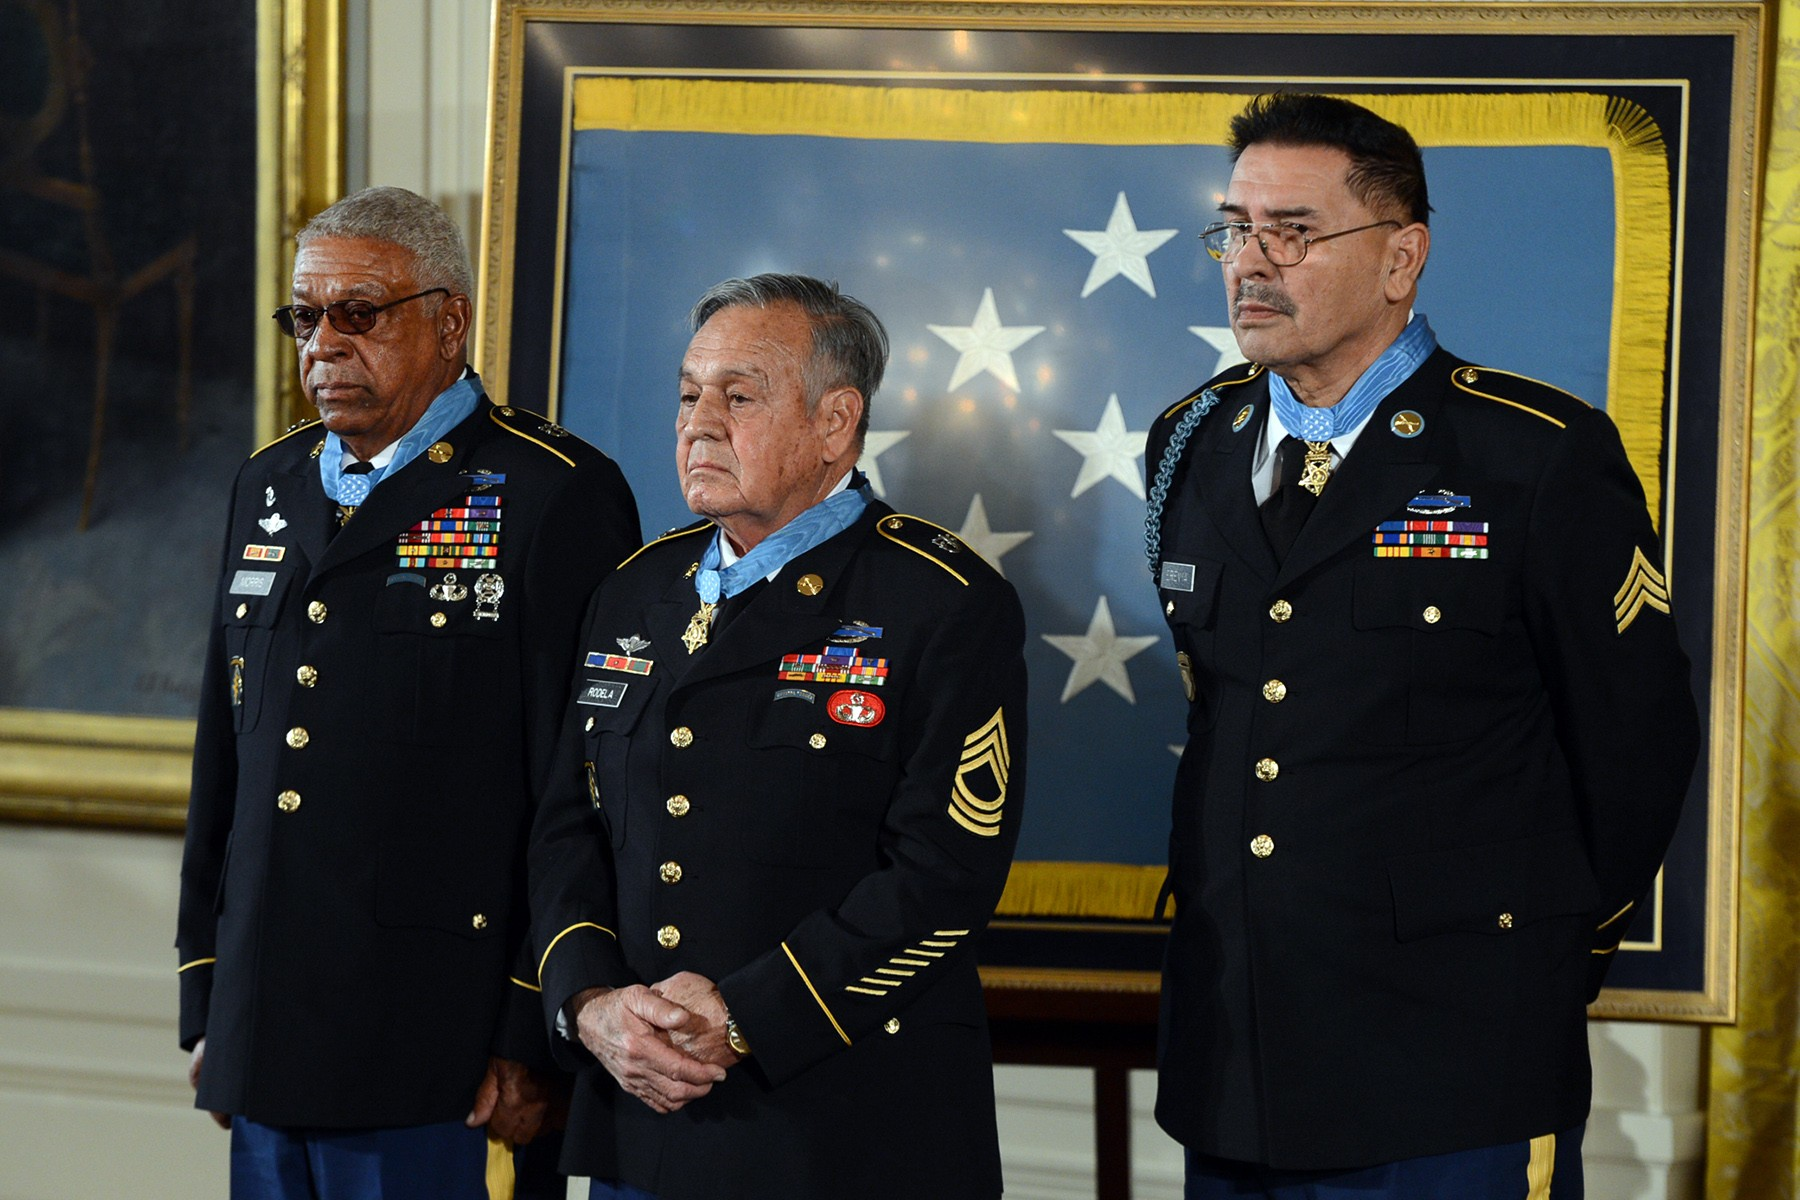 iers receive long overdue medals of honor article the original